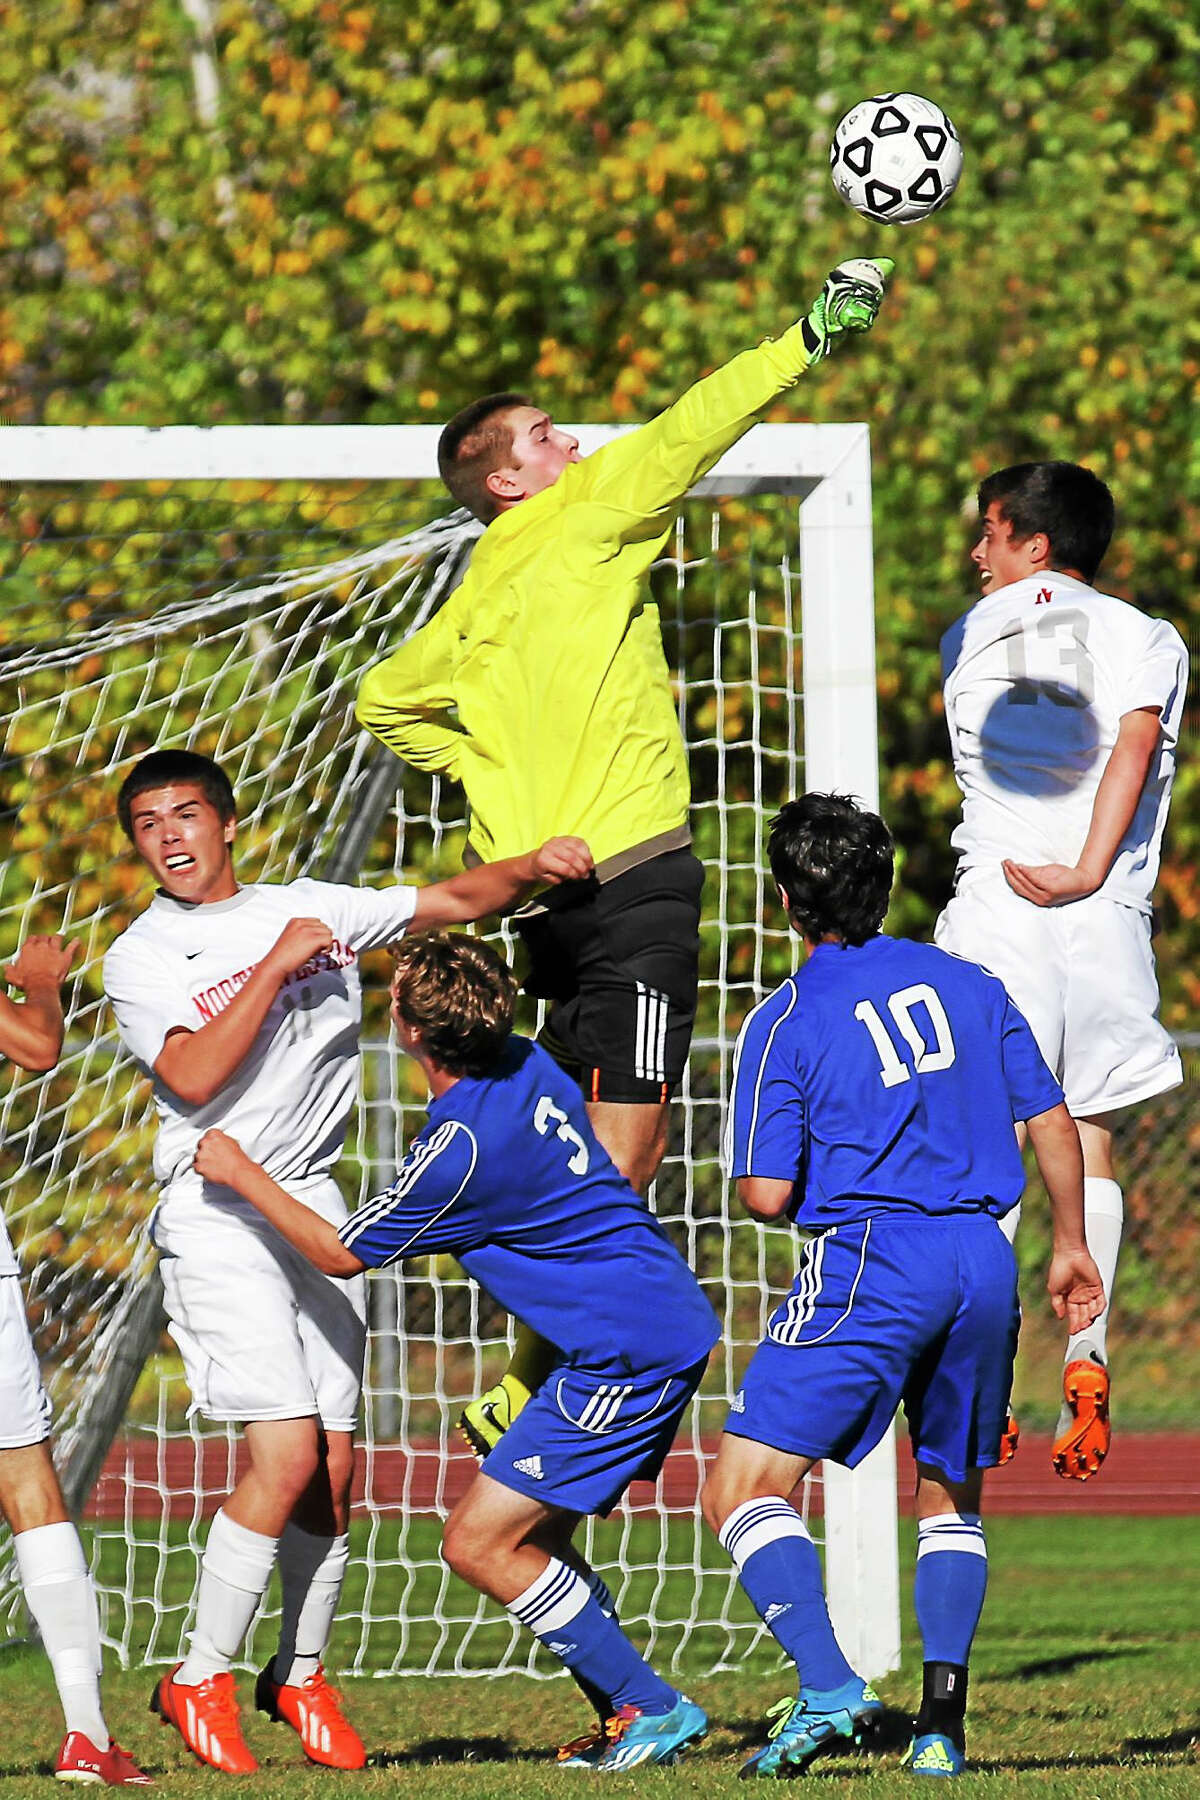 Lewis Mills goalkeeper Ben Lewis makes a save in his team's win over Northwestern Tuesday afternoon.